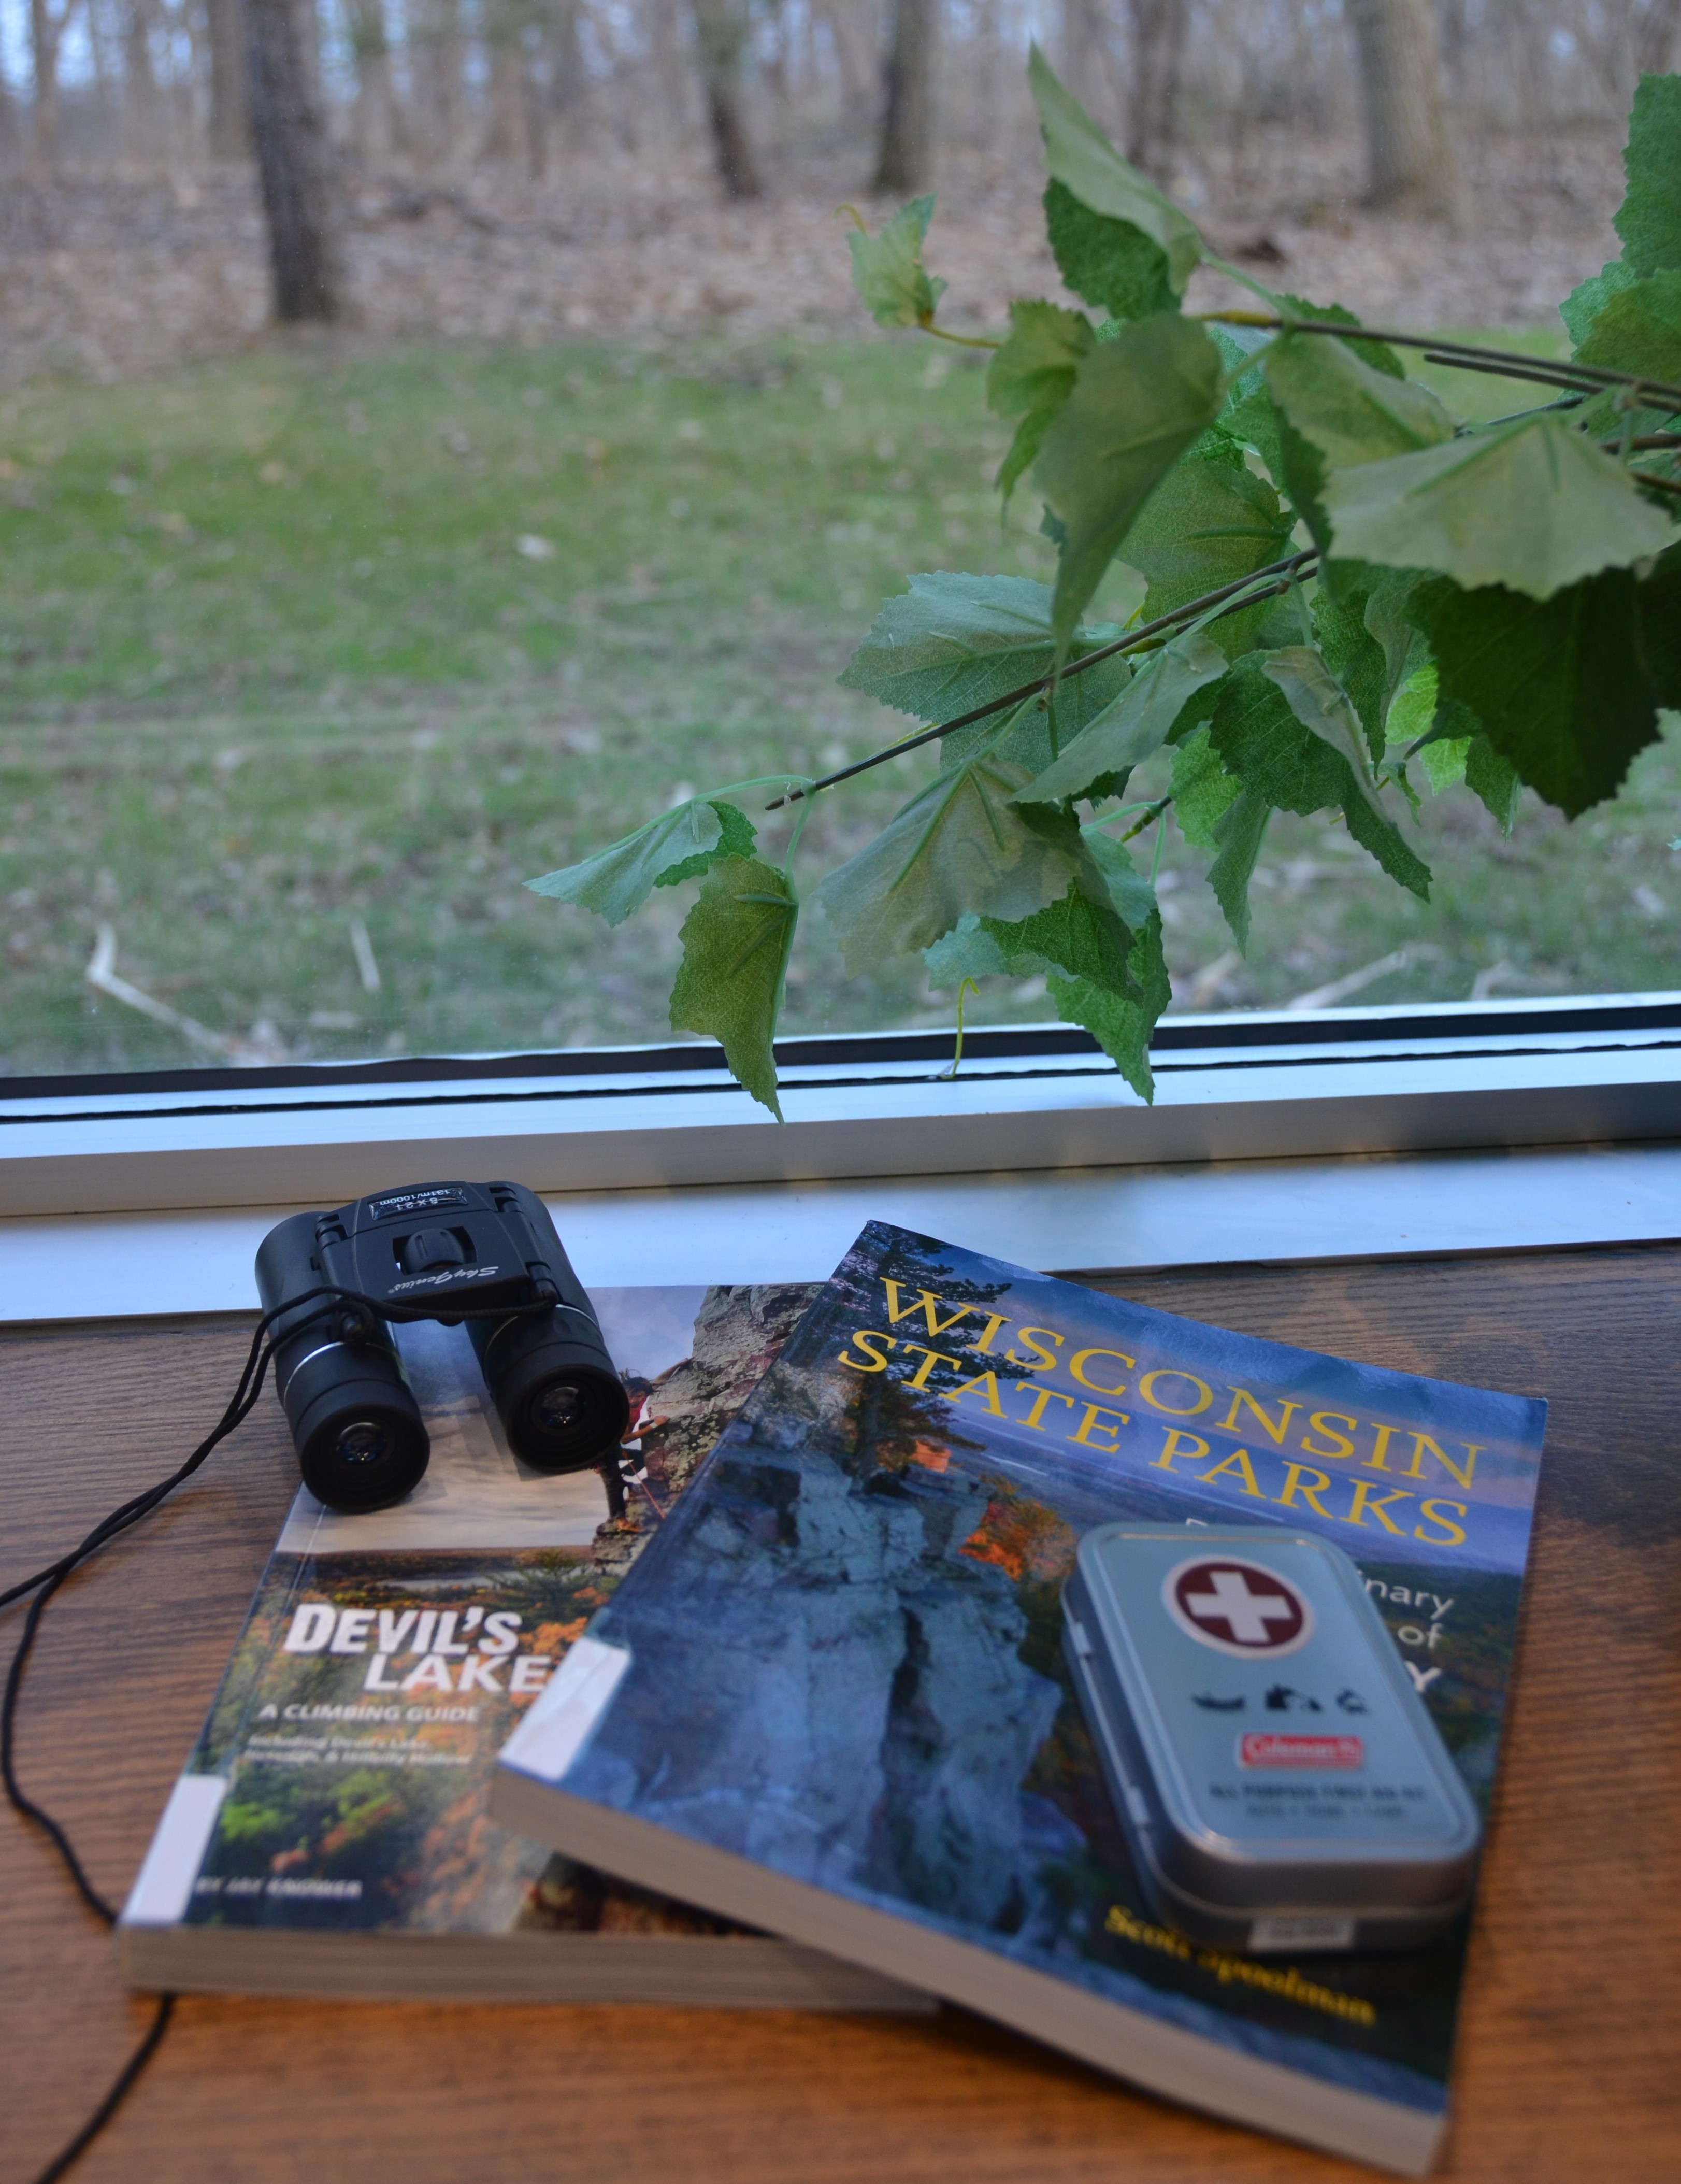 Contents of the Devil's Lake State Park Kit including two books, binoculars, and a first aid kit.